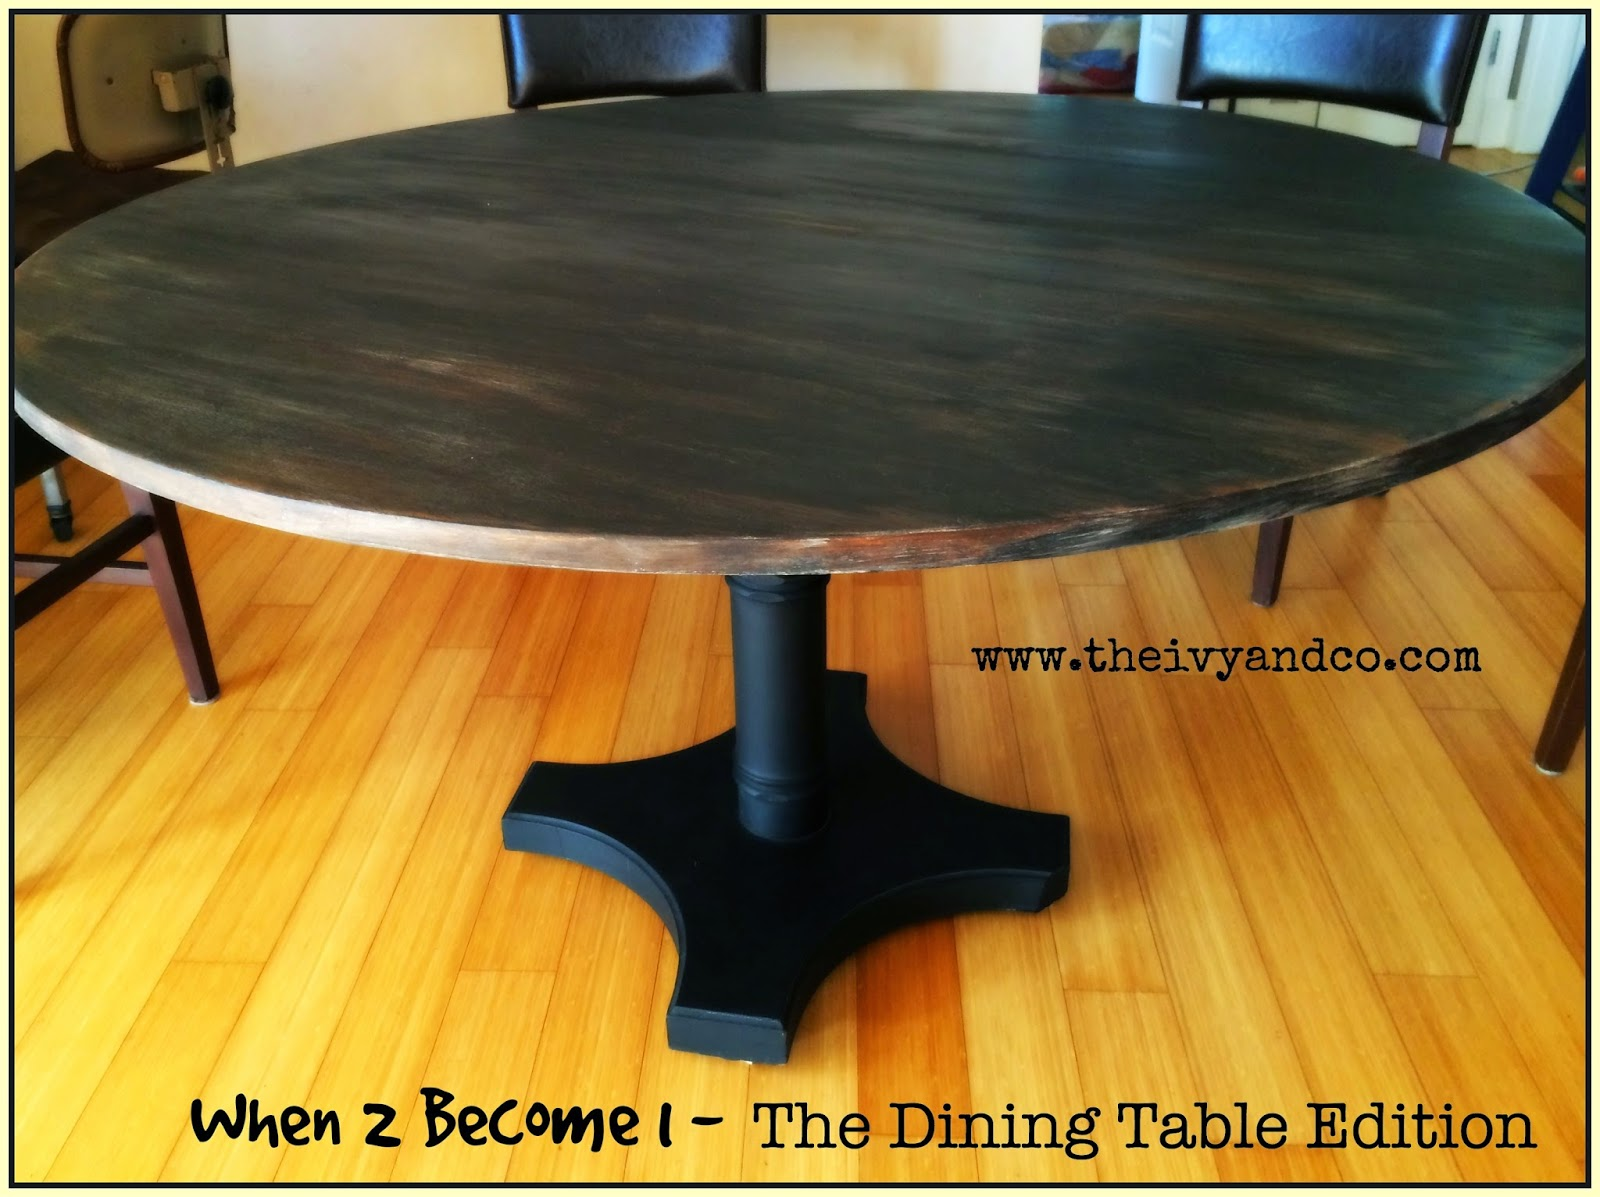 Black Chalk & Milk Paint Dining Table, Dream Table, Wood Dining Table, Table Conversion, Kauai Habitat for Humanity, Kauai Ross Dress for Less, Painting Your Kitchen Table